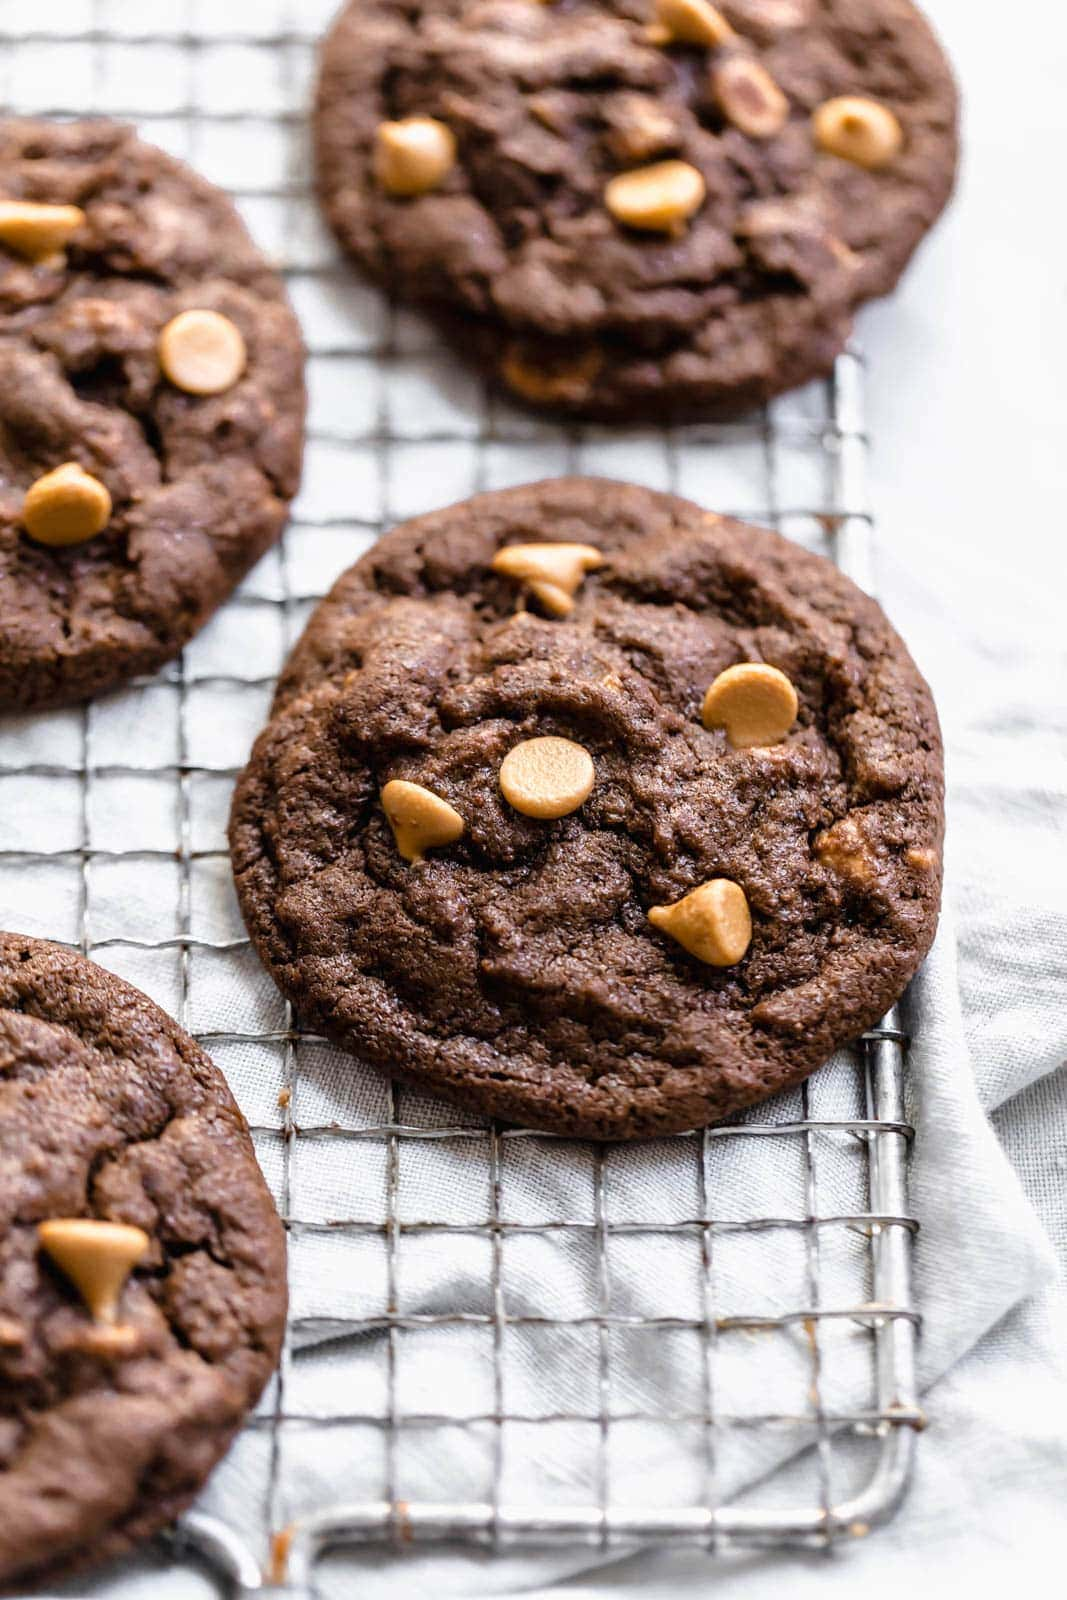 Chocolate Peanut Butter Chip Cookies on wire rack